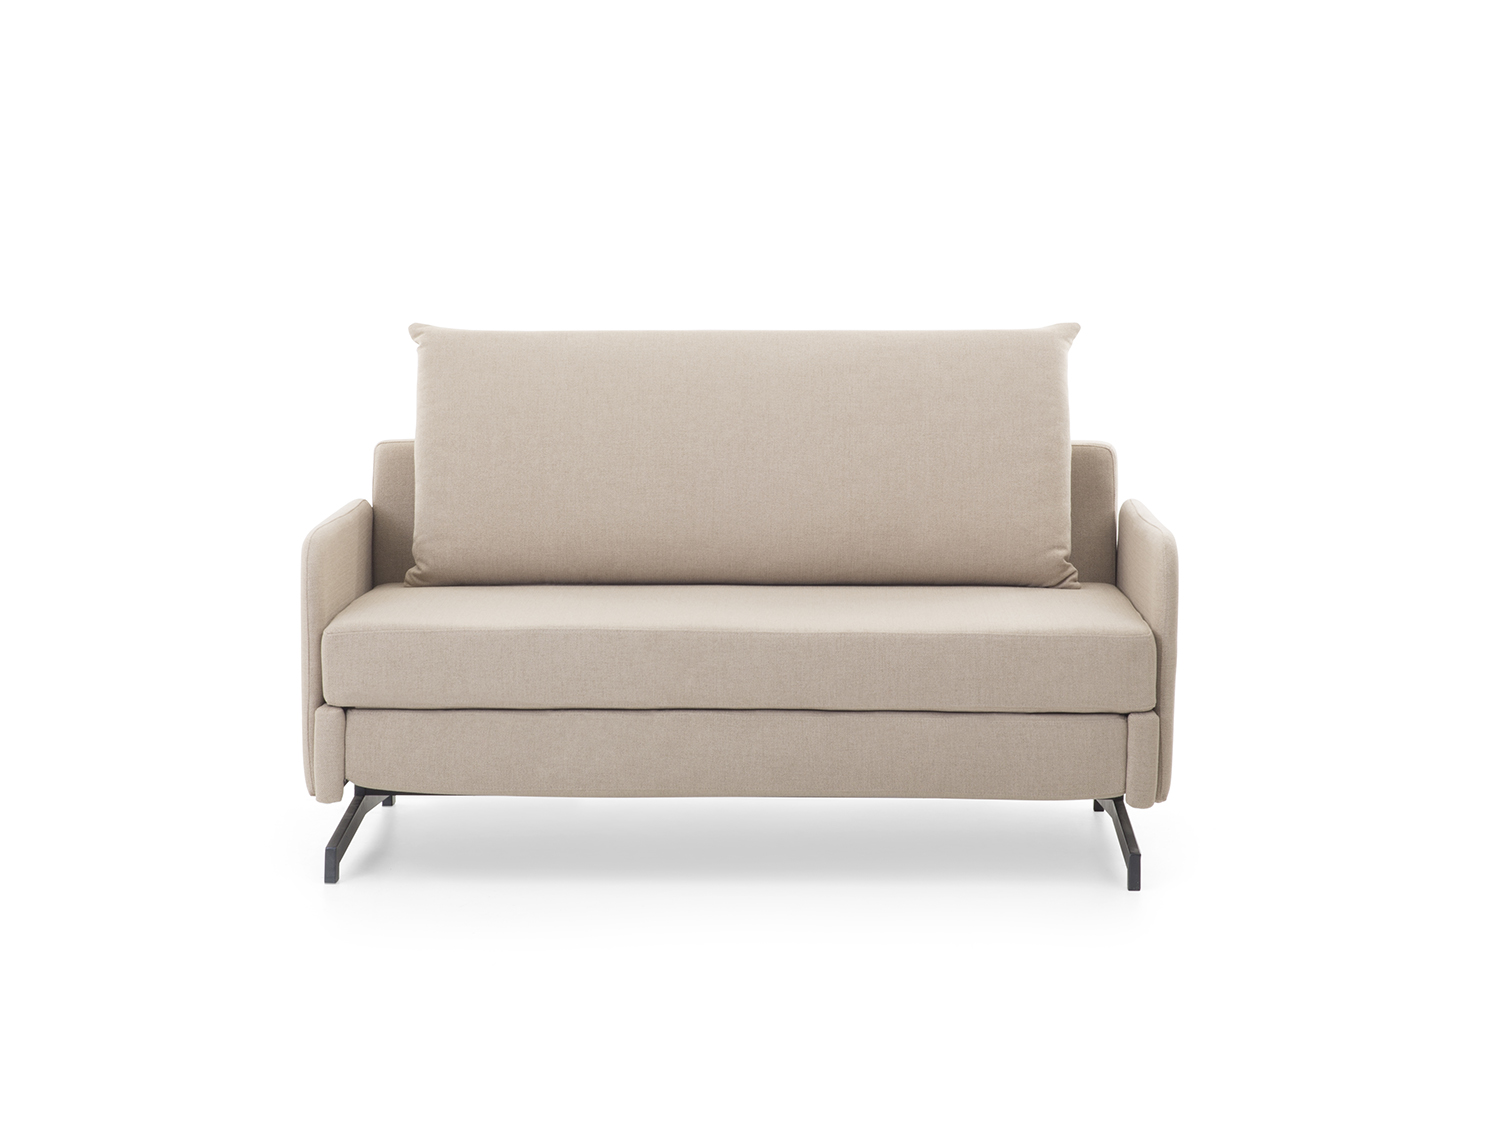 Upholstered Sofa Sofa Love Seat Living Room Furniture